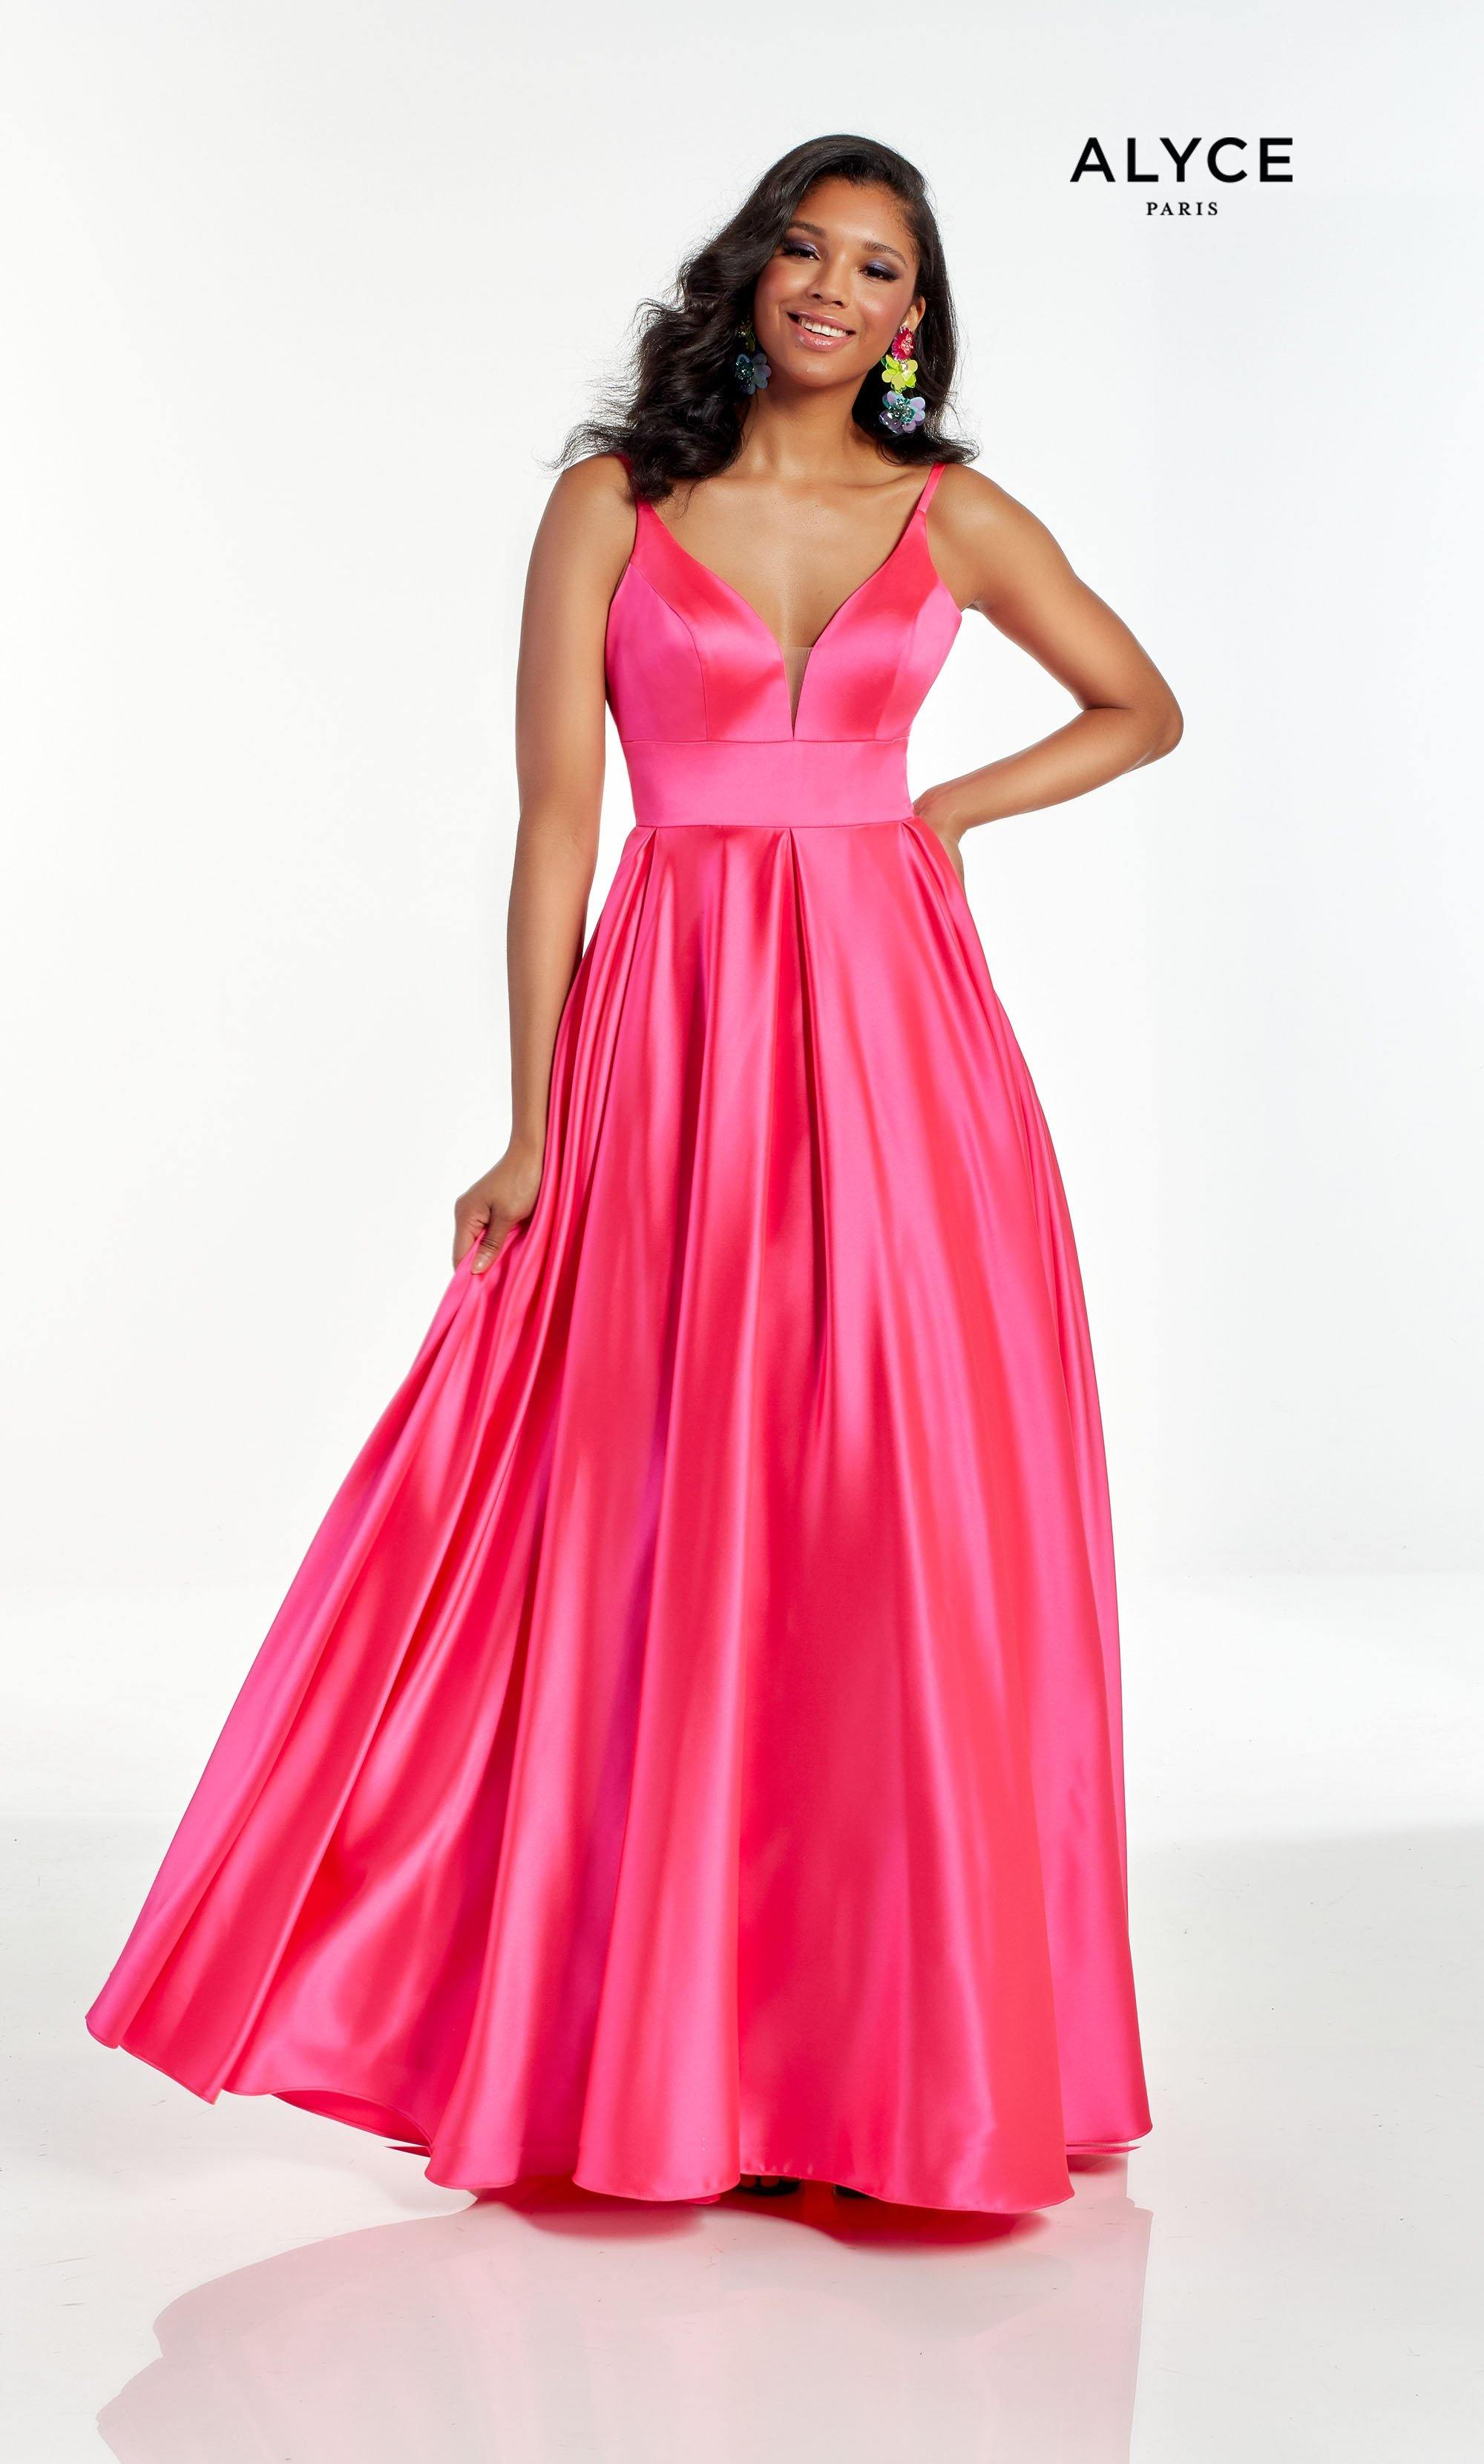 Barbie Pink wedding guest dress with a plunging neckline and pockets